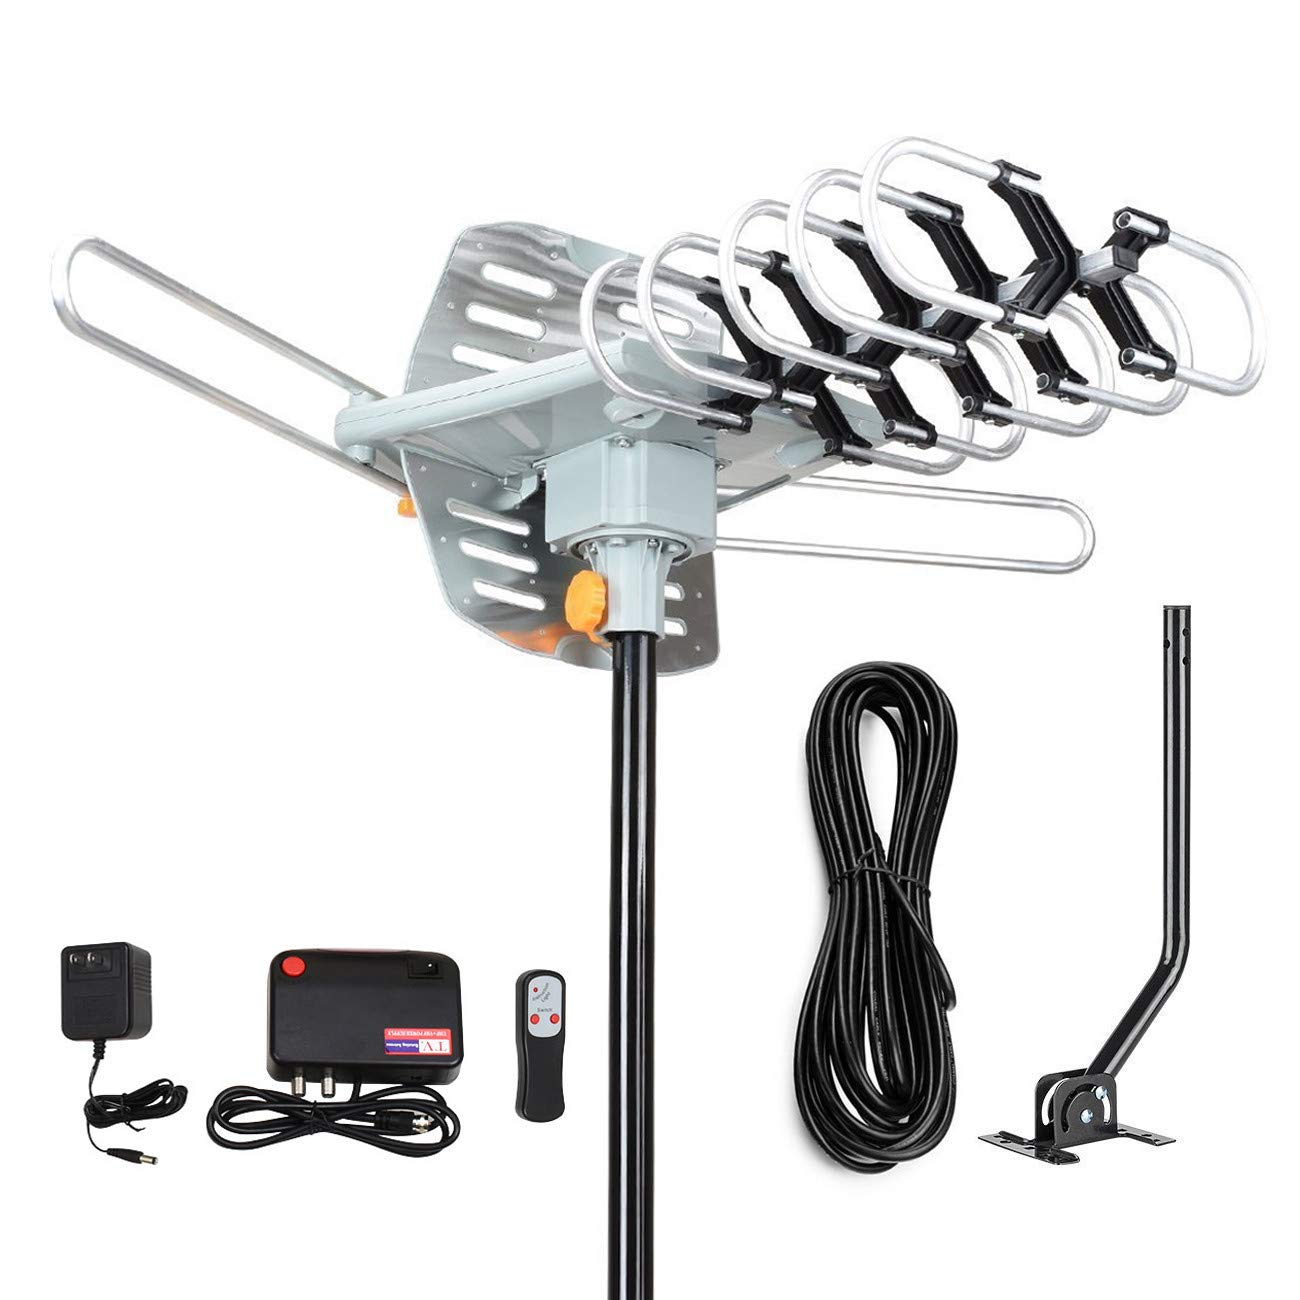 HDTV Antenna-150 Miles Range Amplified Digital Outdoor HDTV Antenna with Mounting Pole & 33FT RG6 Coax Cable-360 Degree Rotation Wireless Remote-Snap-On Installation Support 2 TVs by PACOSO